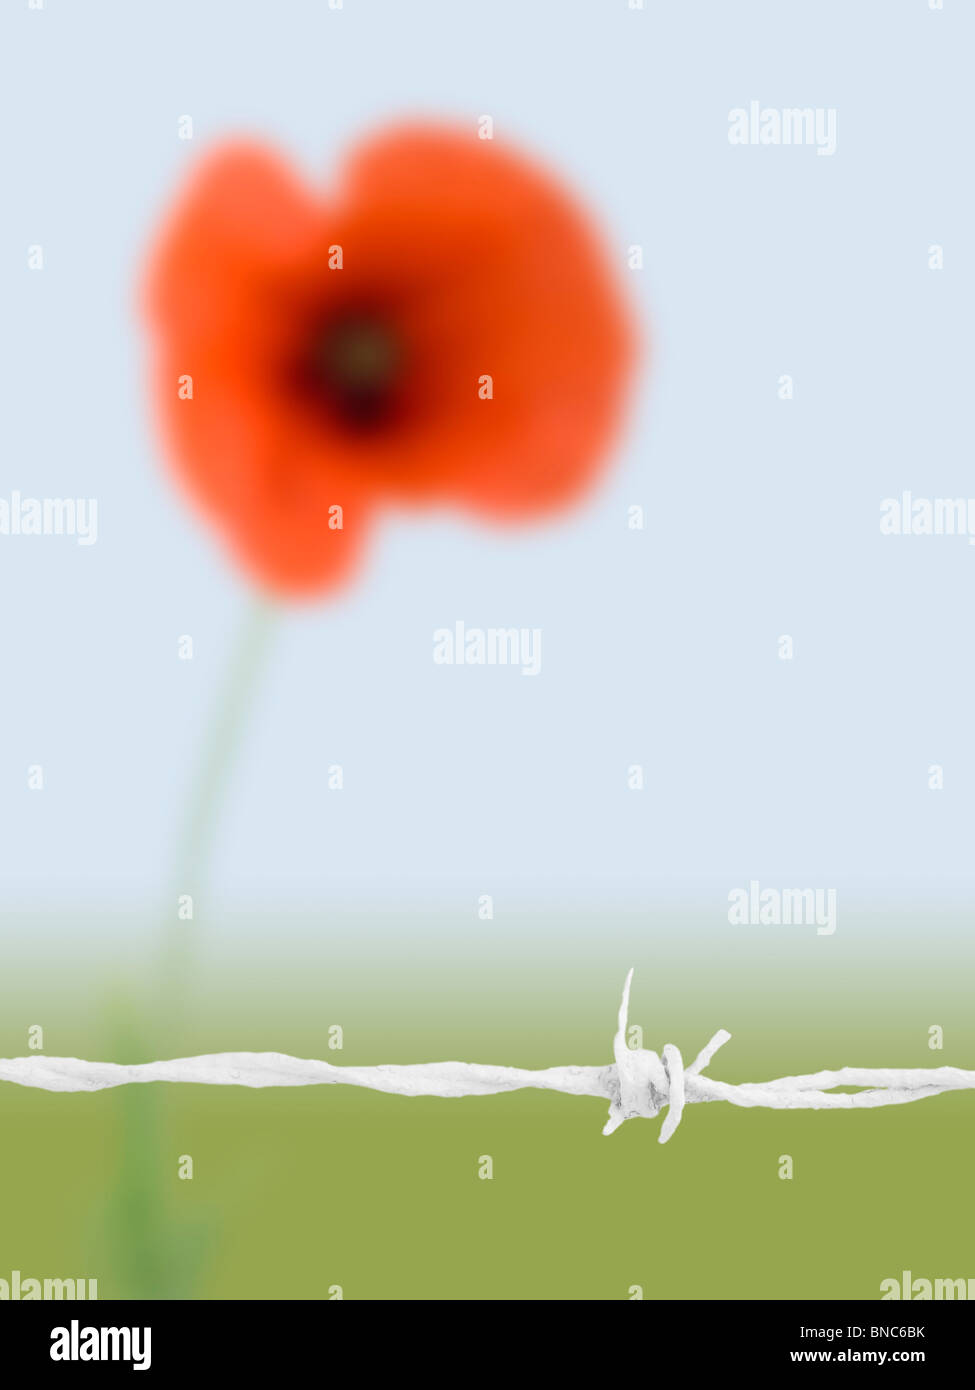 Remembrance Wwii Stockfotos & Remembrance Wwii Bilder - Alamy